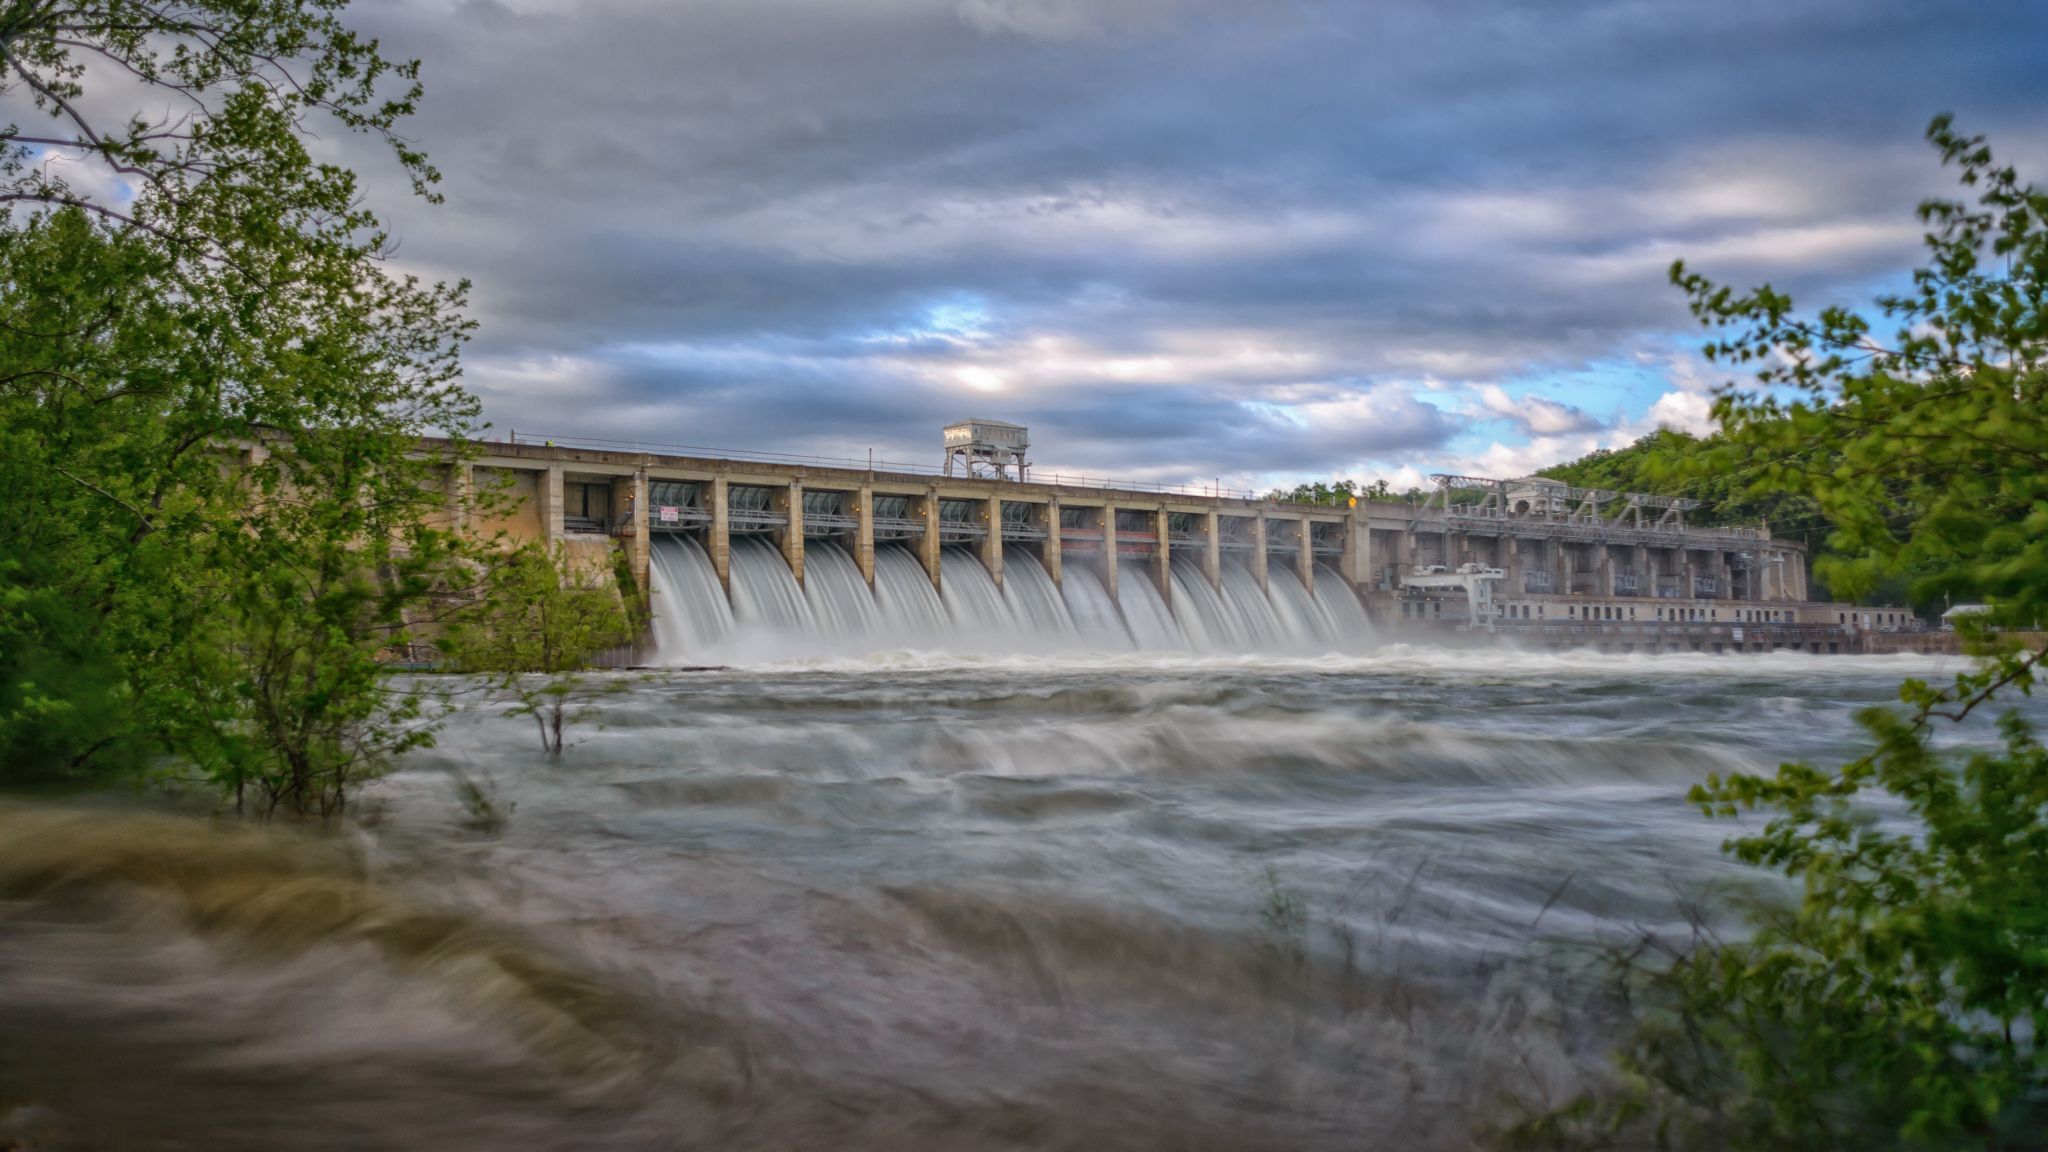 Bagnell Dam with all floodgates open, USA